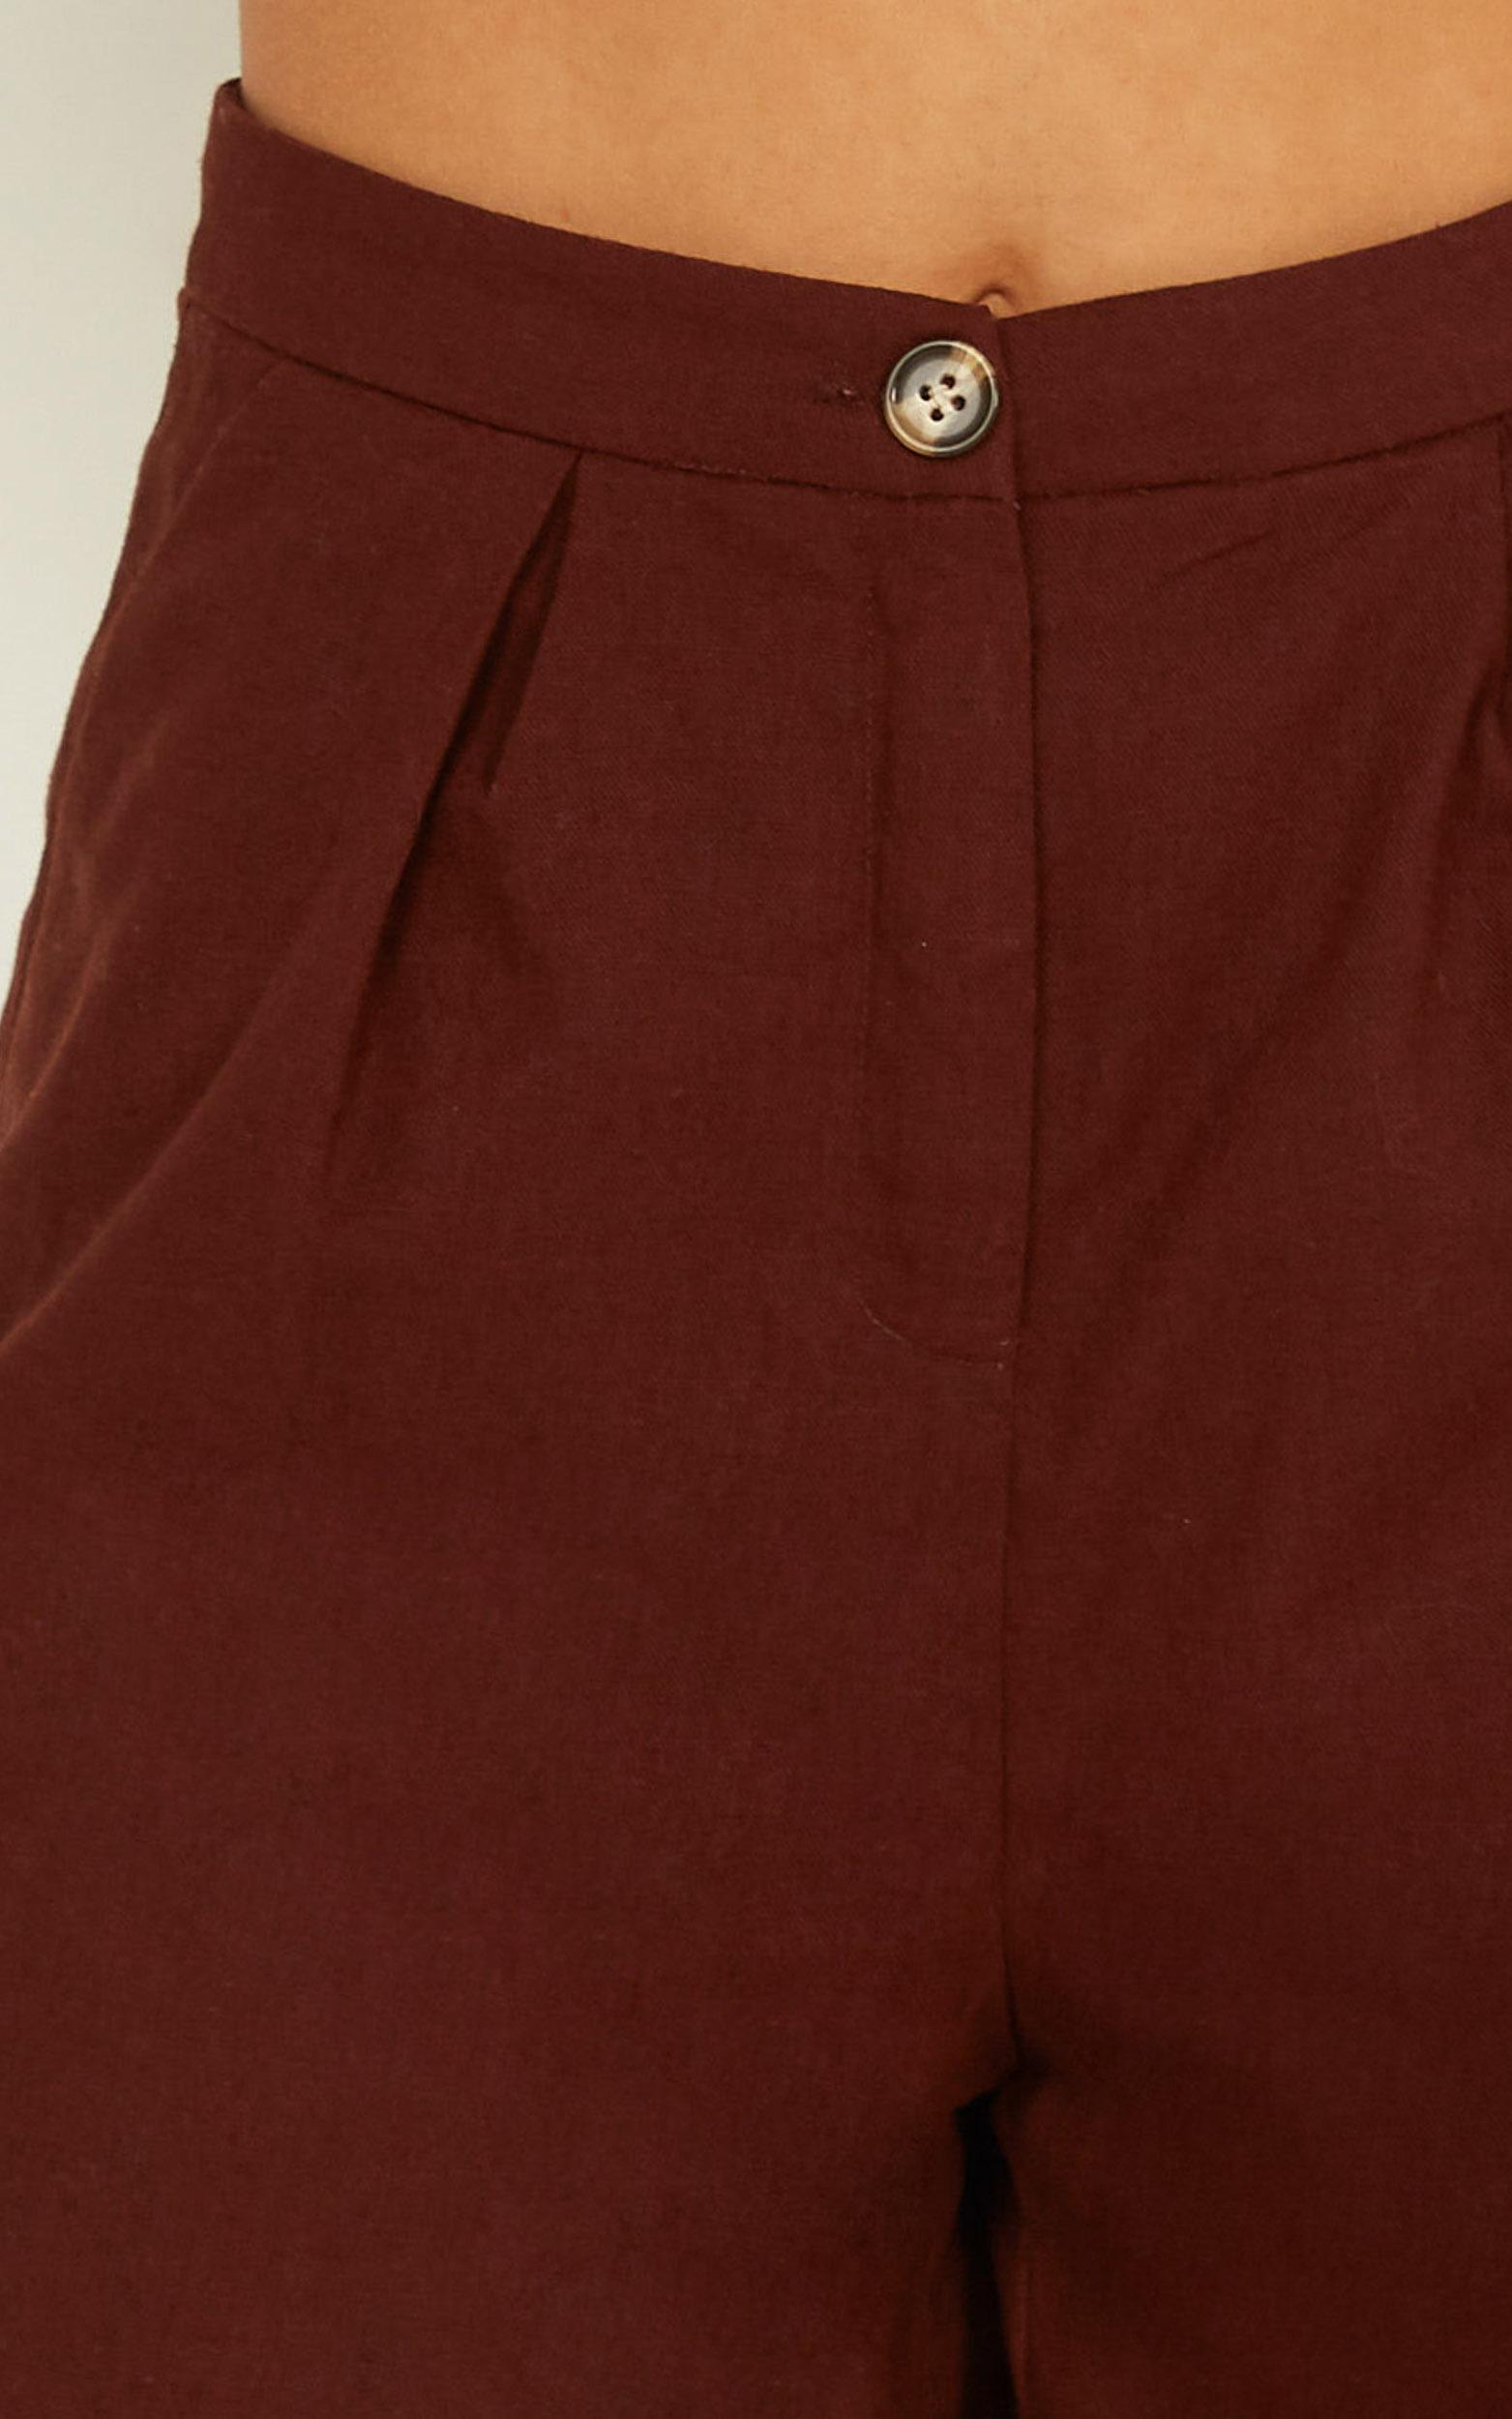 Trip to Bermuda Shorts in chocolate linen look - 18 (XXXL), Brown, hi-res image number null